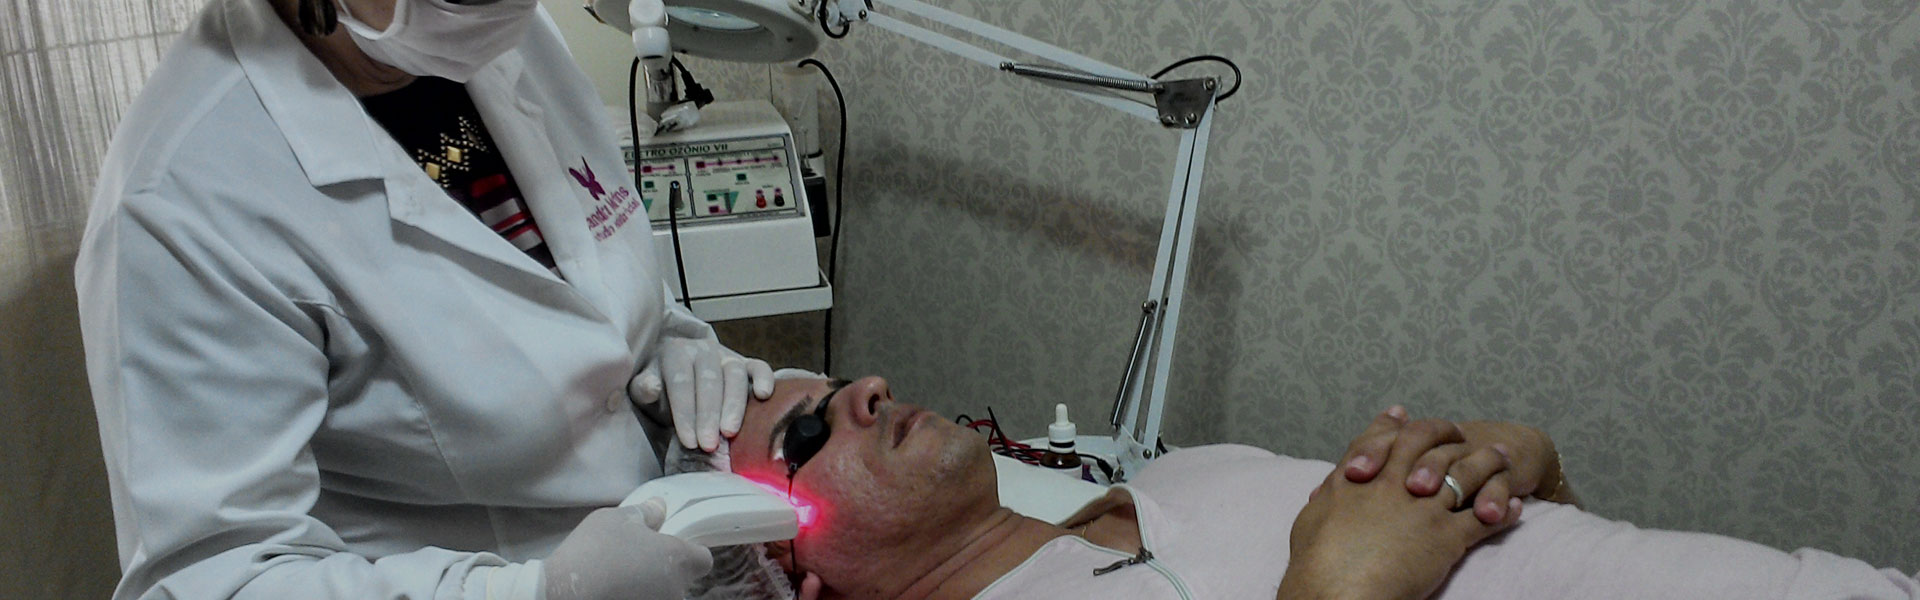 laser-e-led-terapia-estetica-facial